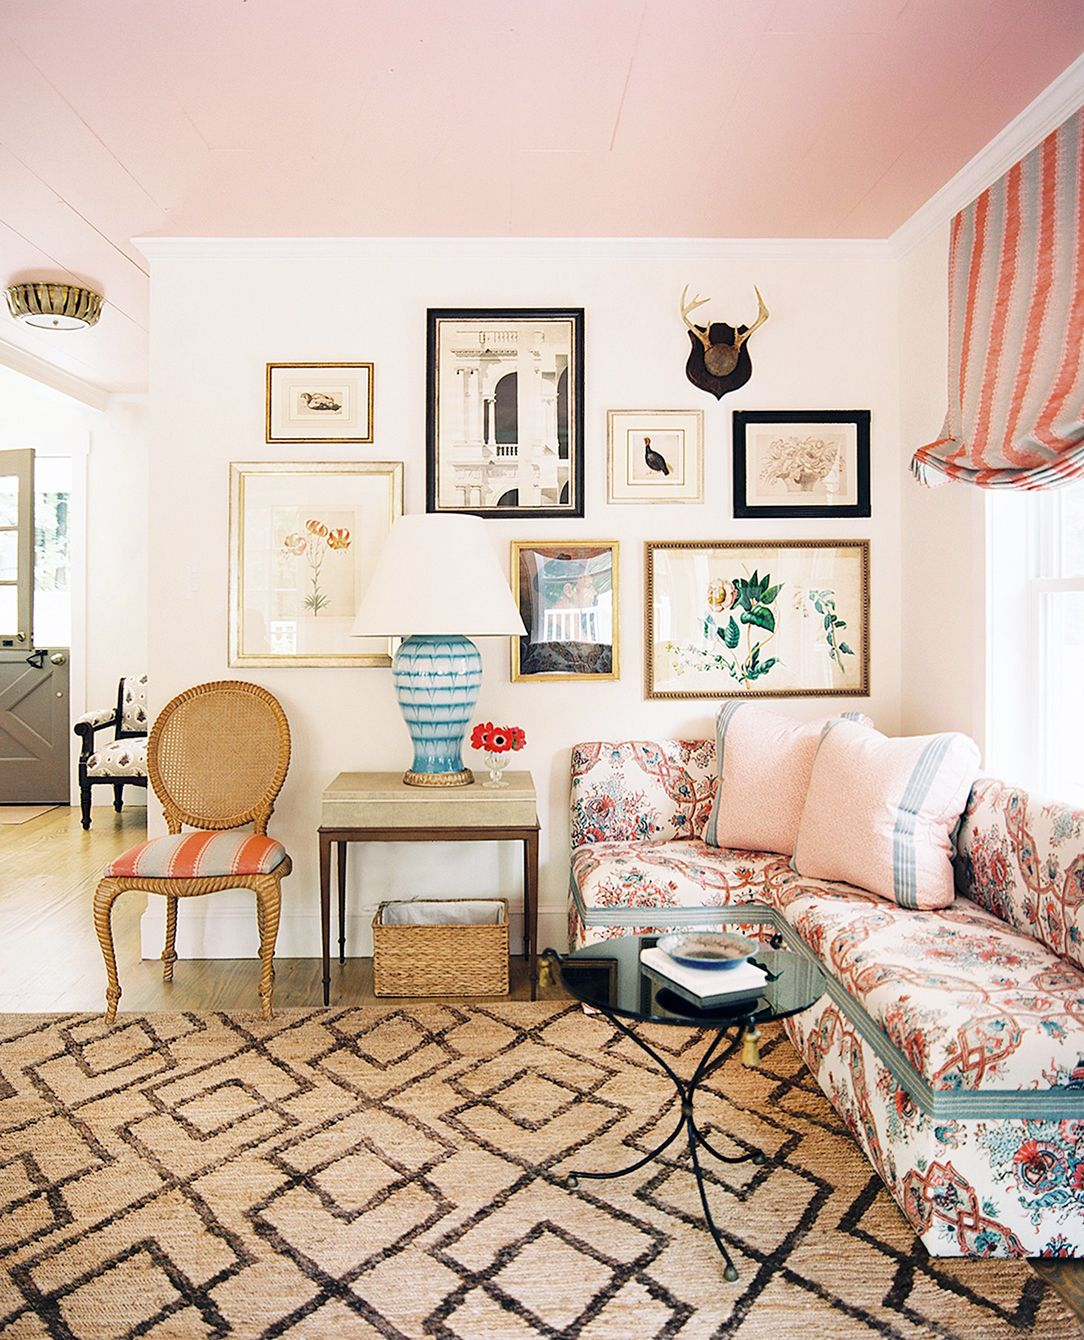 A Y Living Room With Pale Pink Ceiling Small Gallery Wall And Patterned Sofa